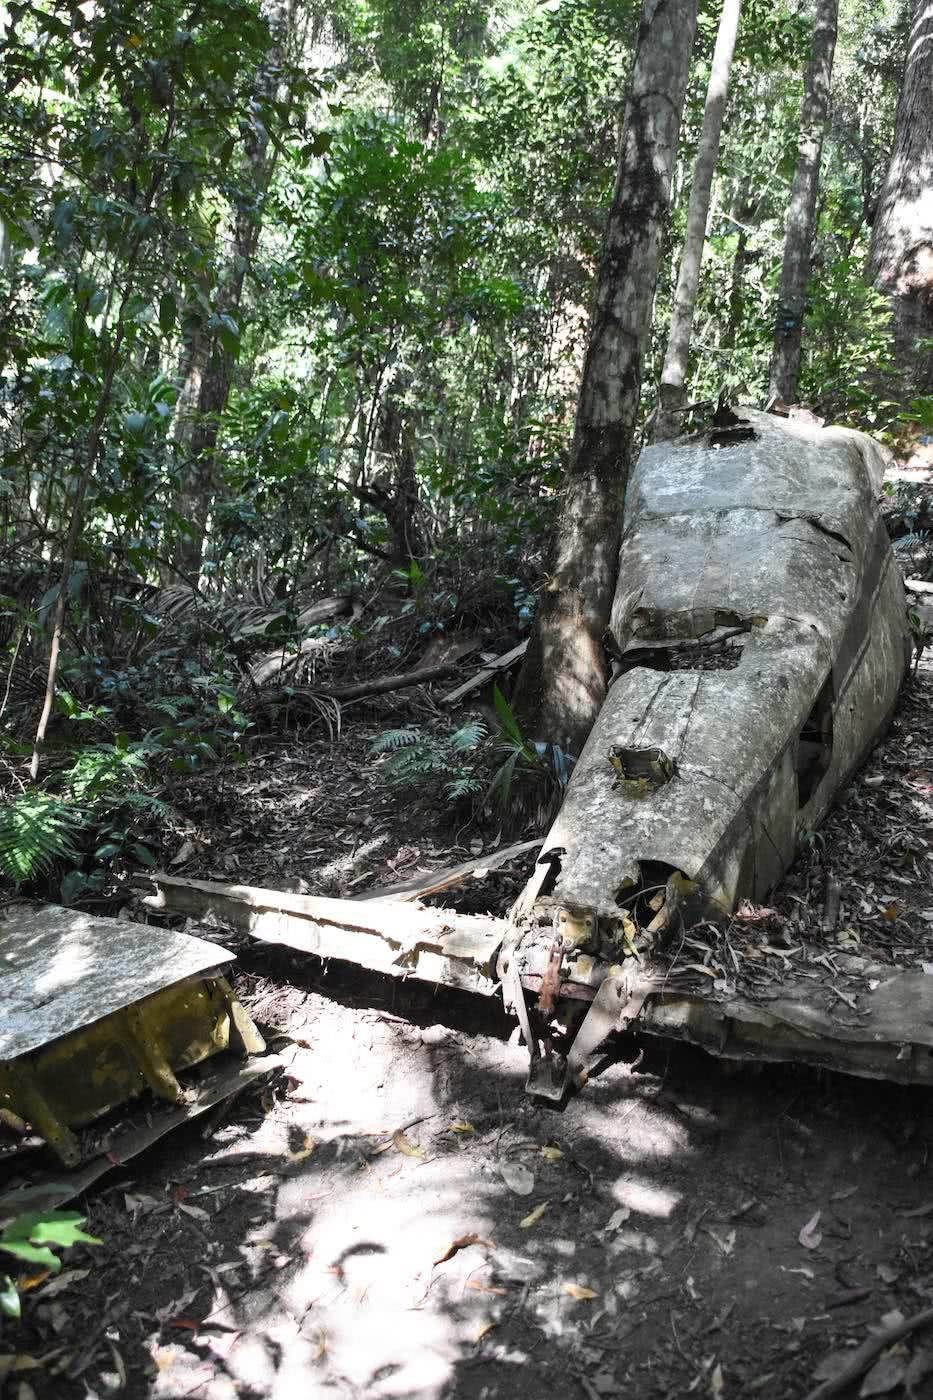 Discover The Piper Comanche Plane Wreck // D'Aguilar National Park (QLD), Lisa Owen, fuselage, rusty, broken, crashed